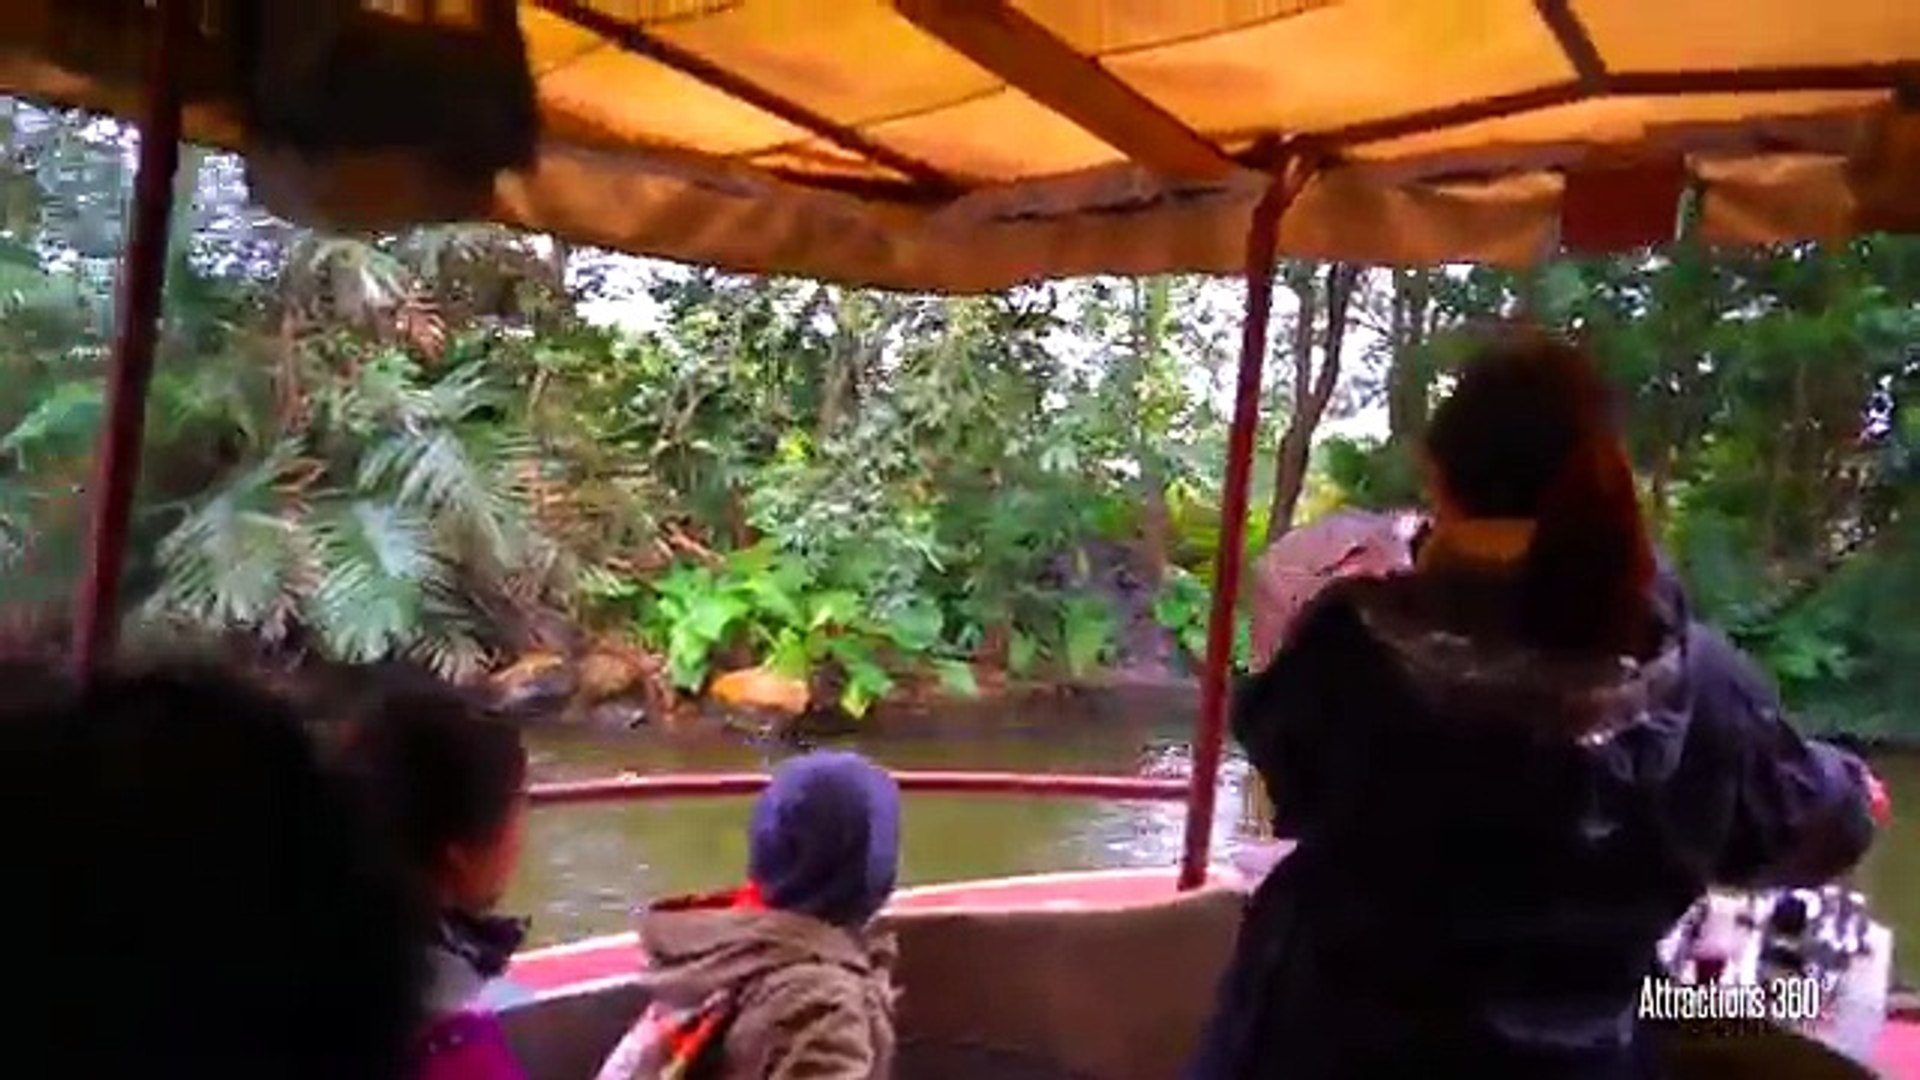 4k Hong Kong Disneyland Jungle Cruise Ride With Awesome Finale 2016 Video Dailymotion